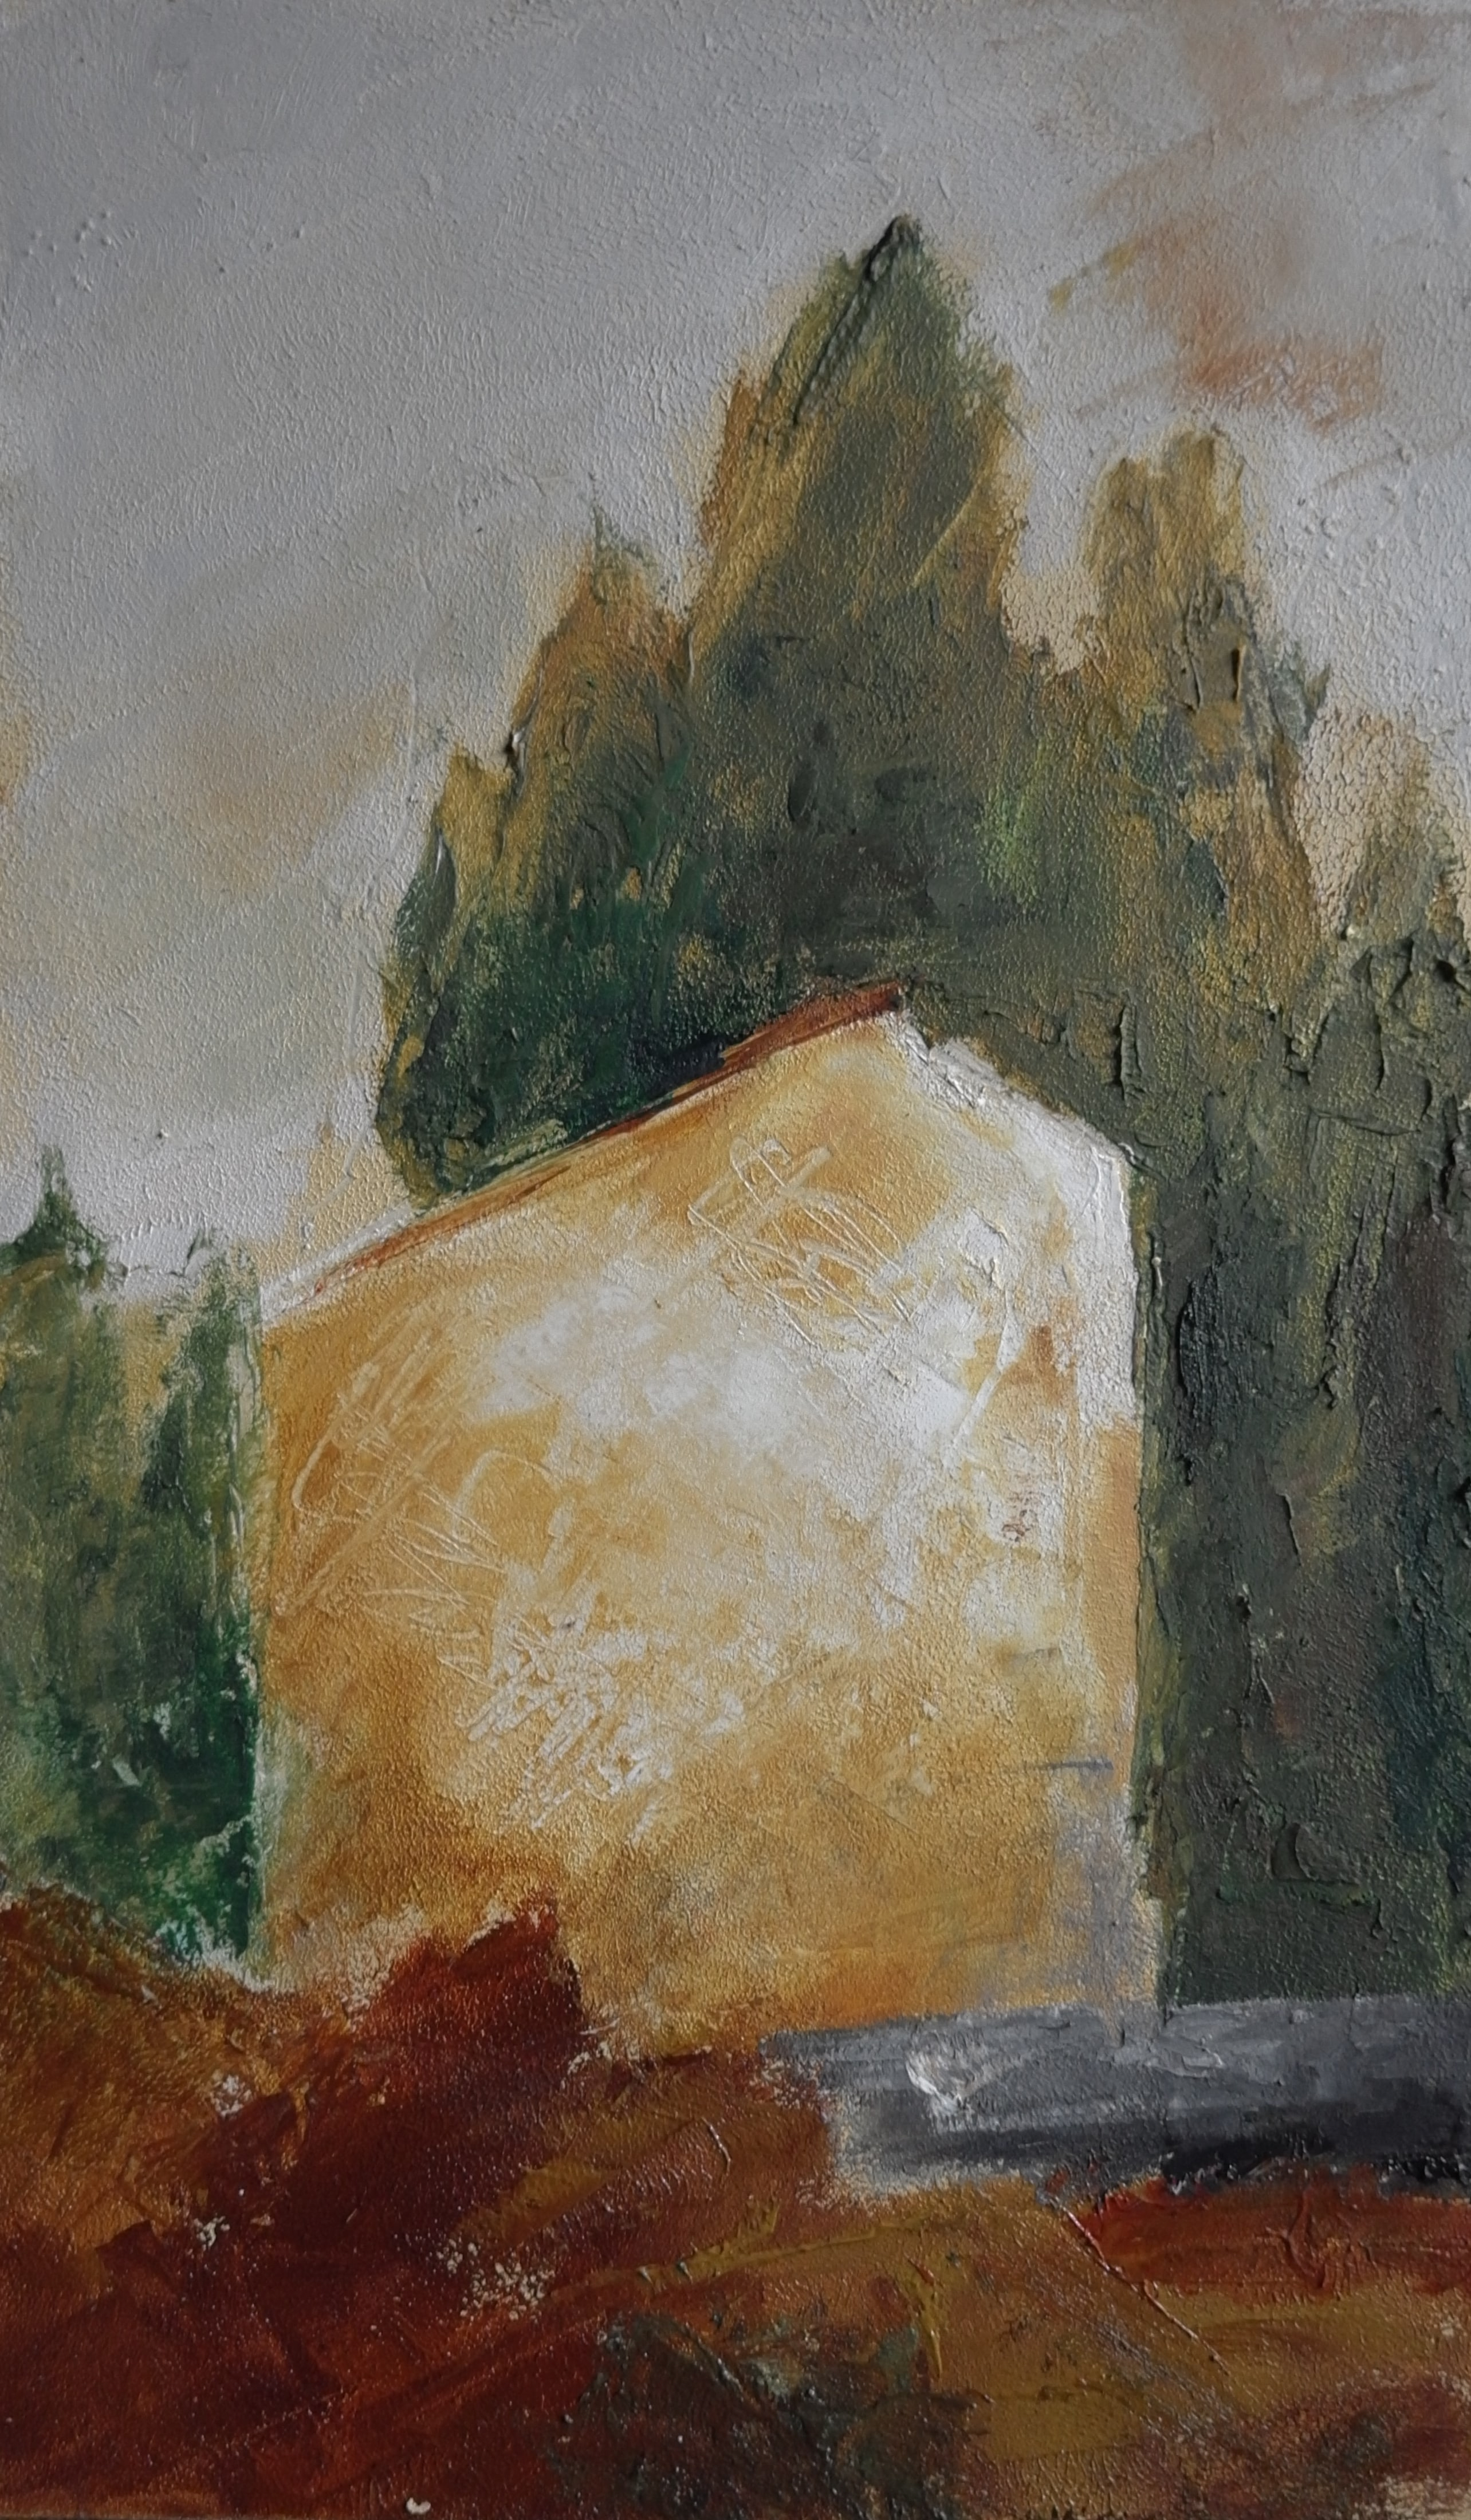 Omaggio a Morandi, After Afro (oil and wax on paper, 25cm x 20cm)